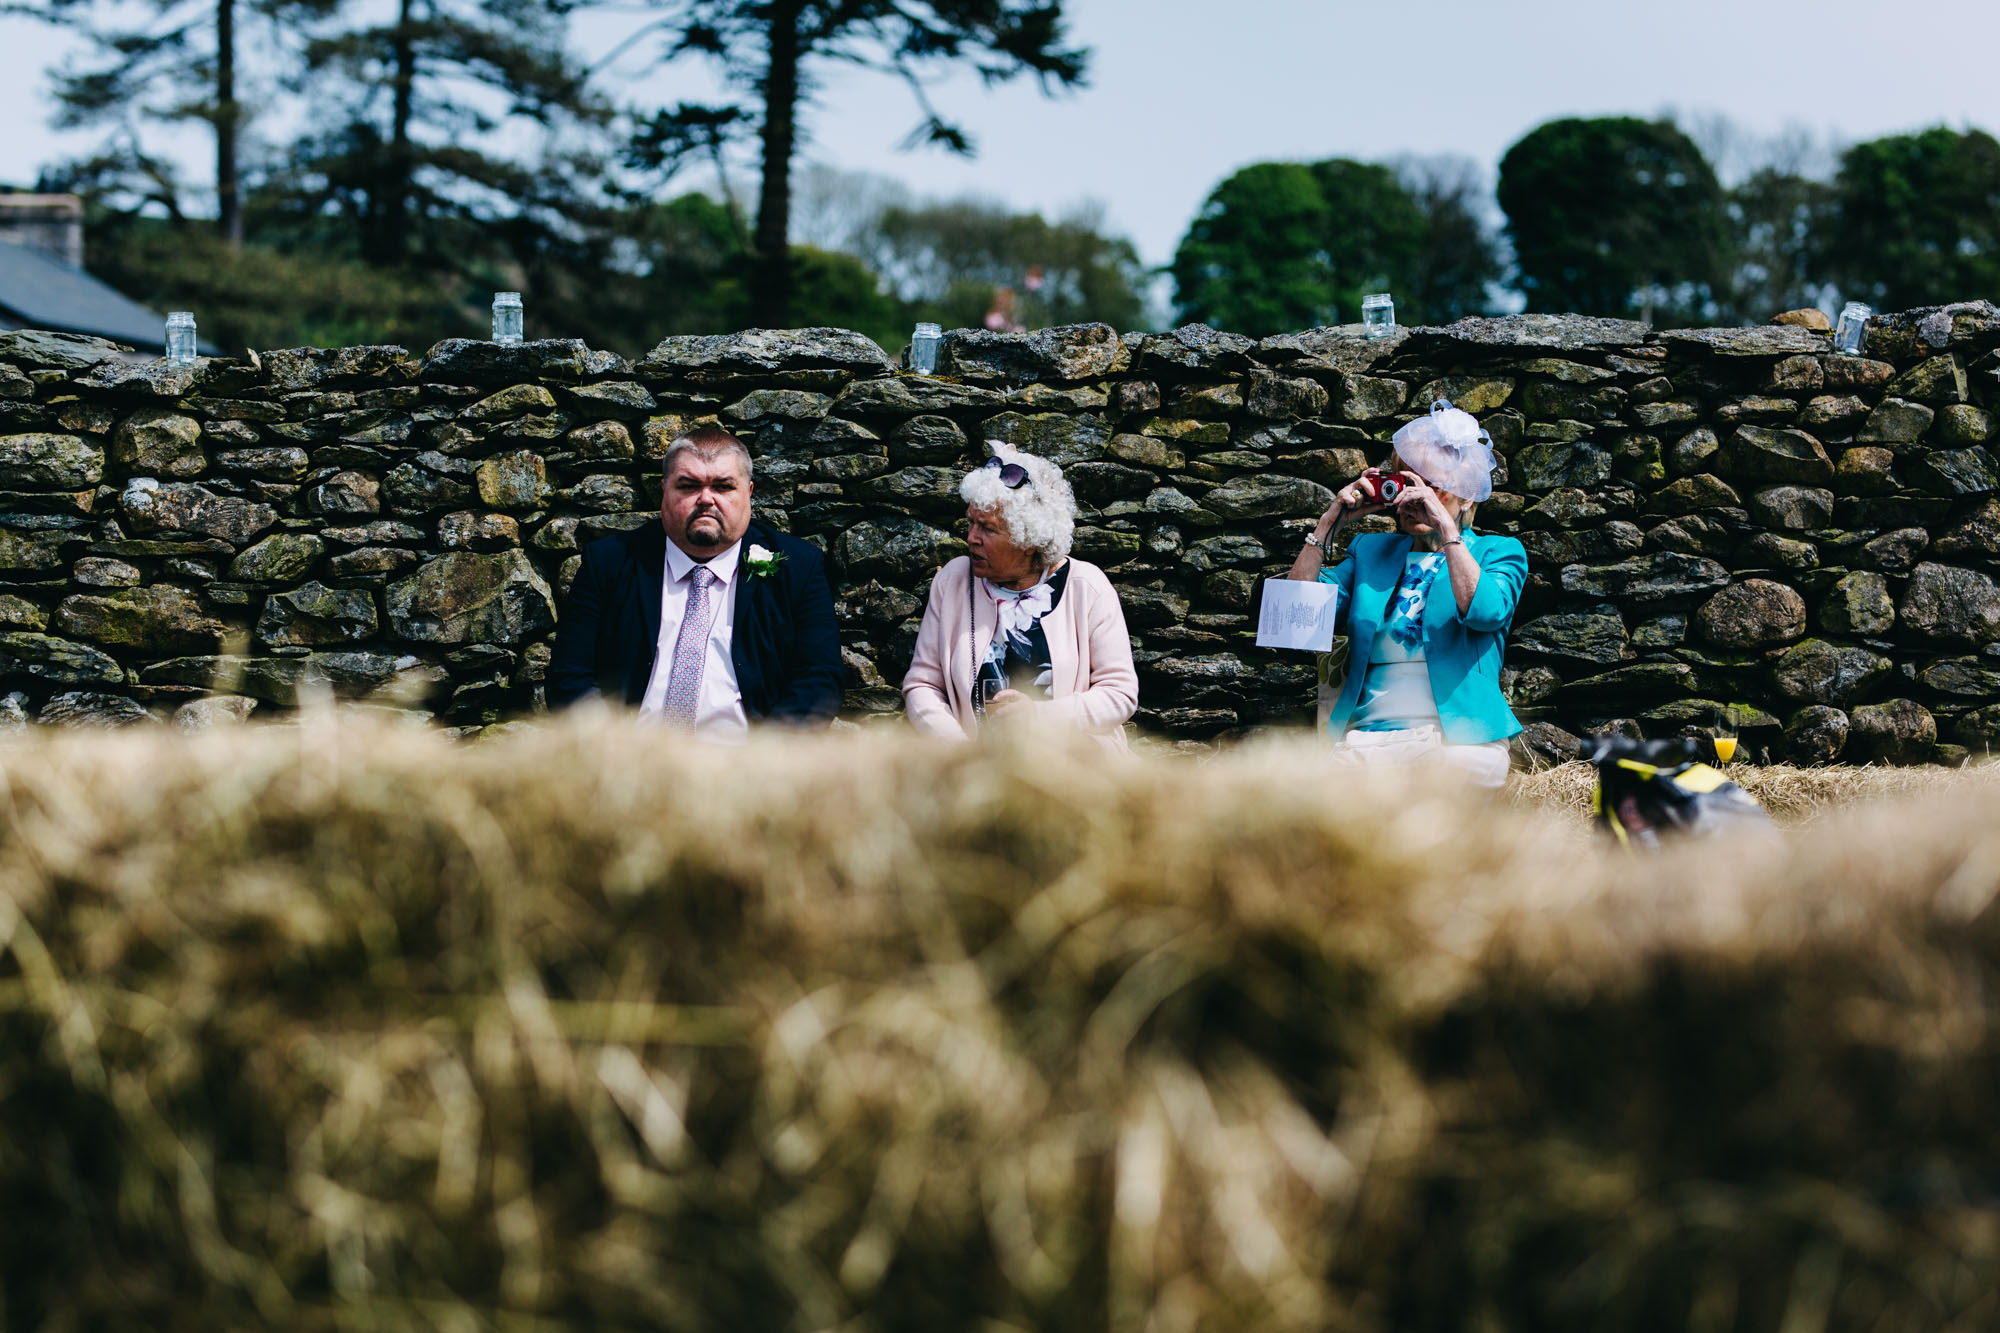 lake-district-garden-wedding-37